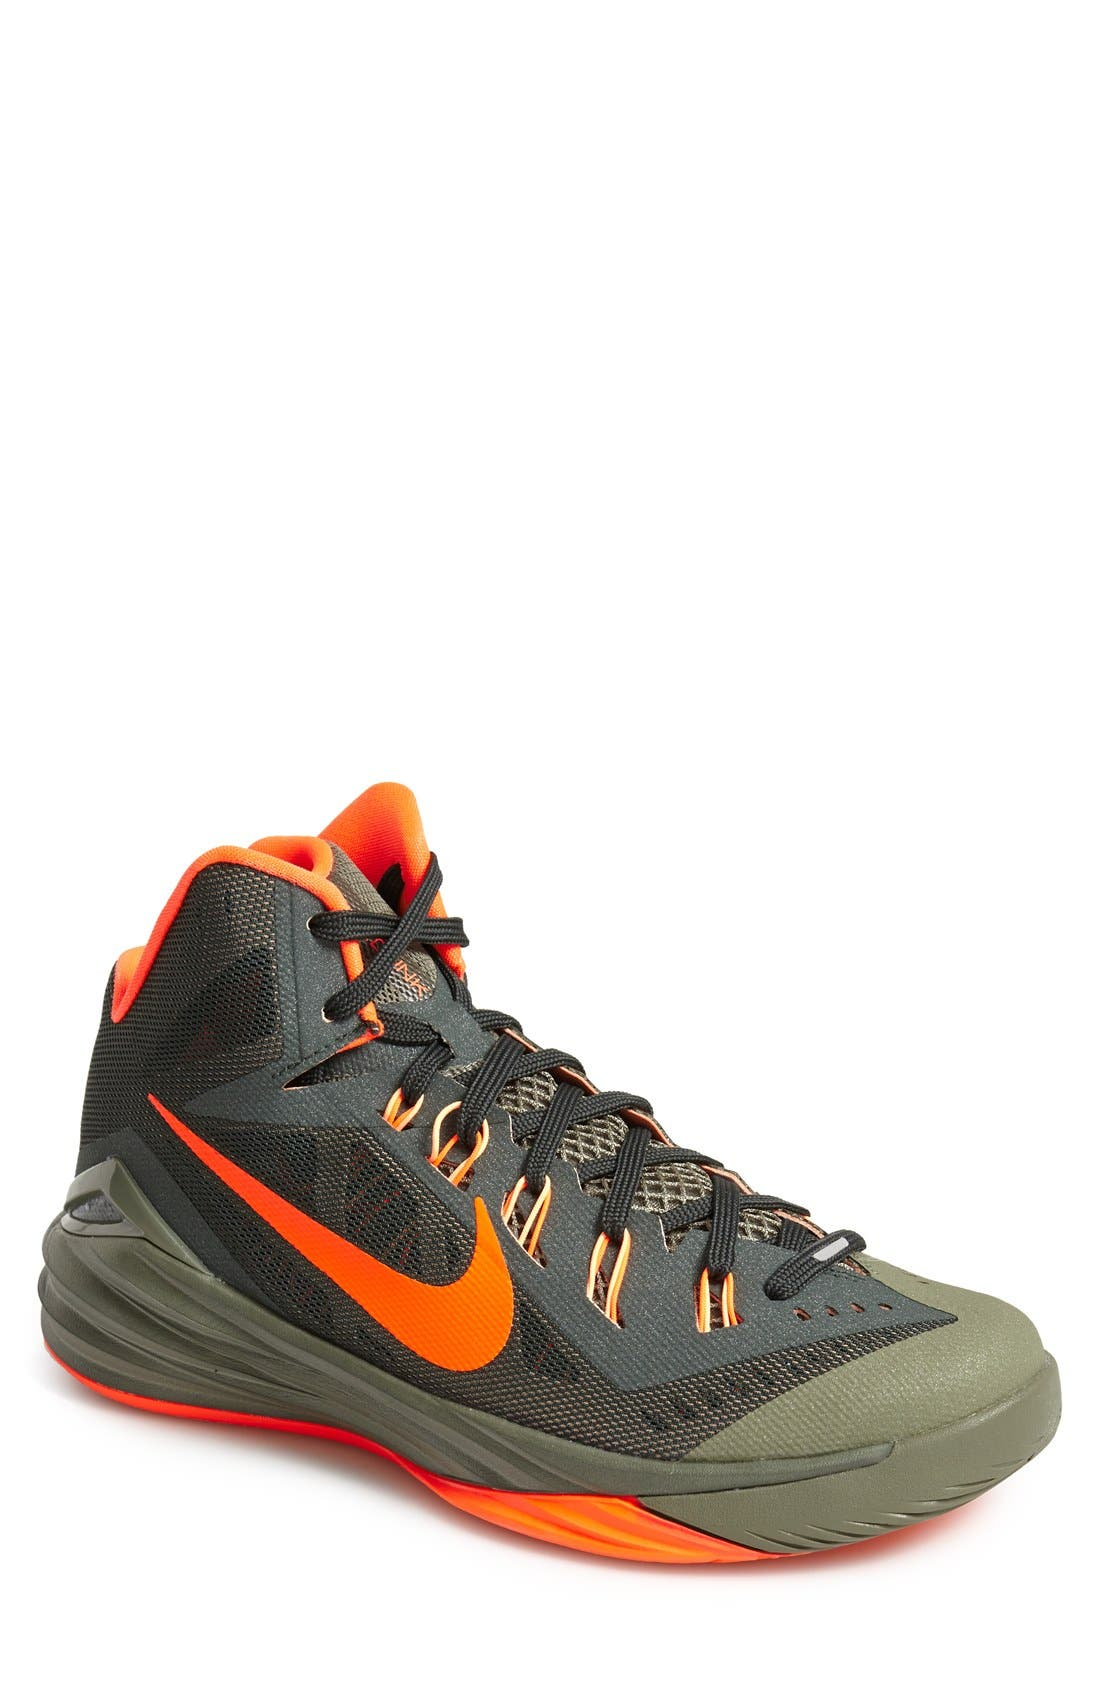 Alternate Image 1 Selected - Nike 'Hyperdunk 2014' Basketball Shoe (Men)